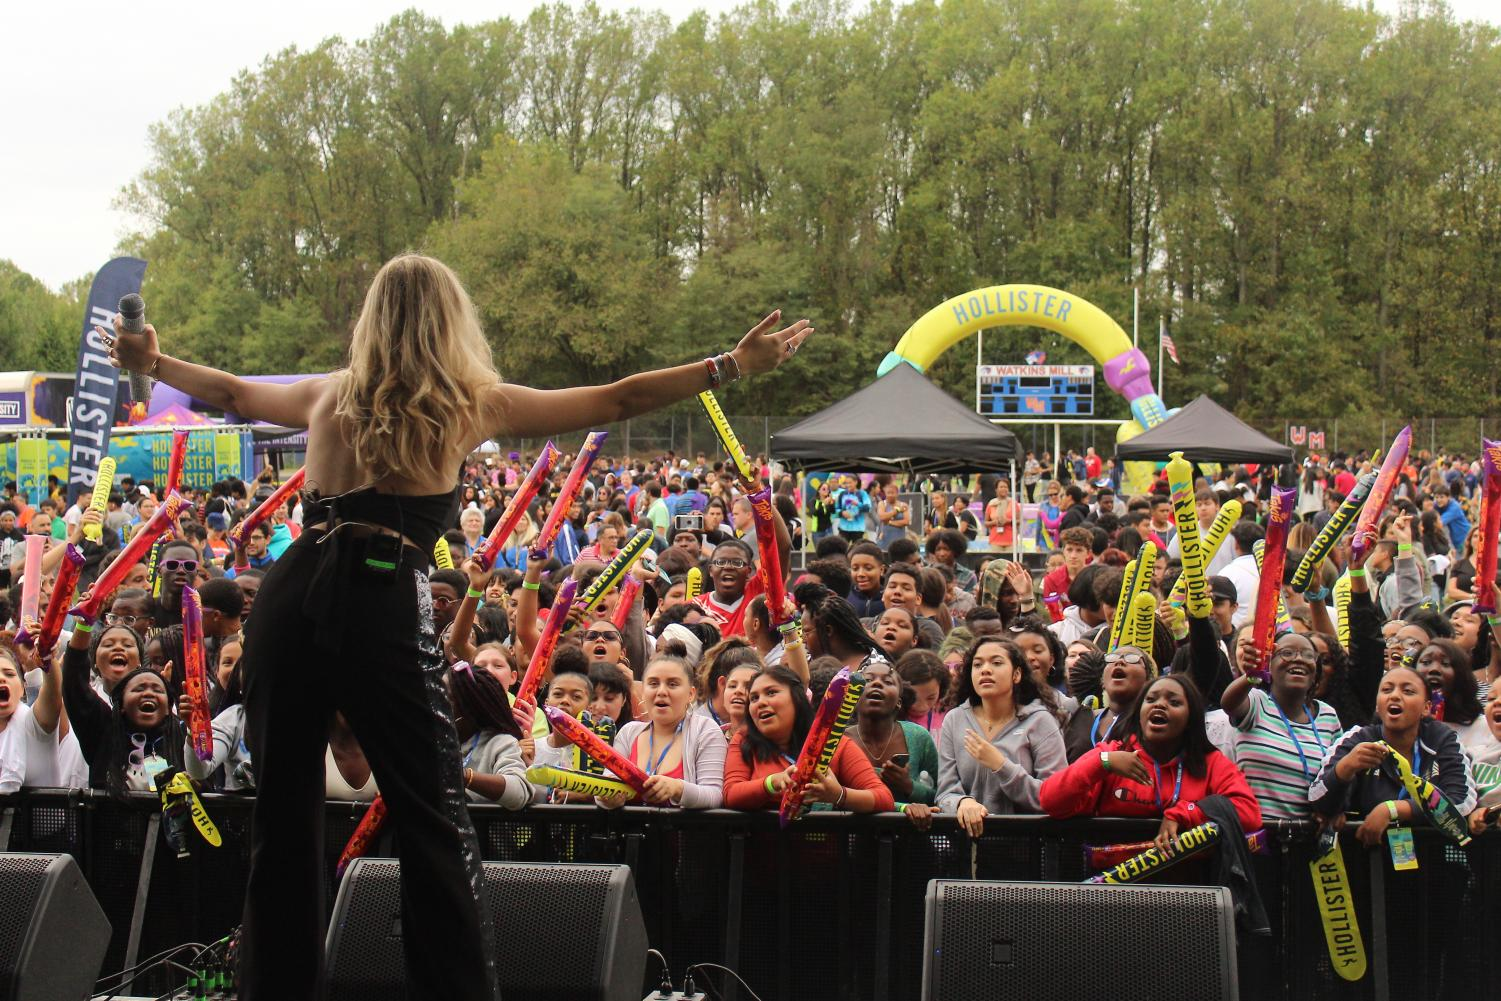 Sofi K embraces her fans during the High School Nation music and arts festival at Watkins Mill High School.